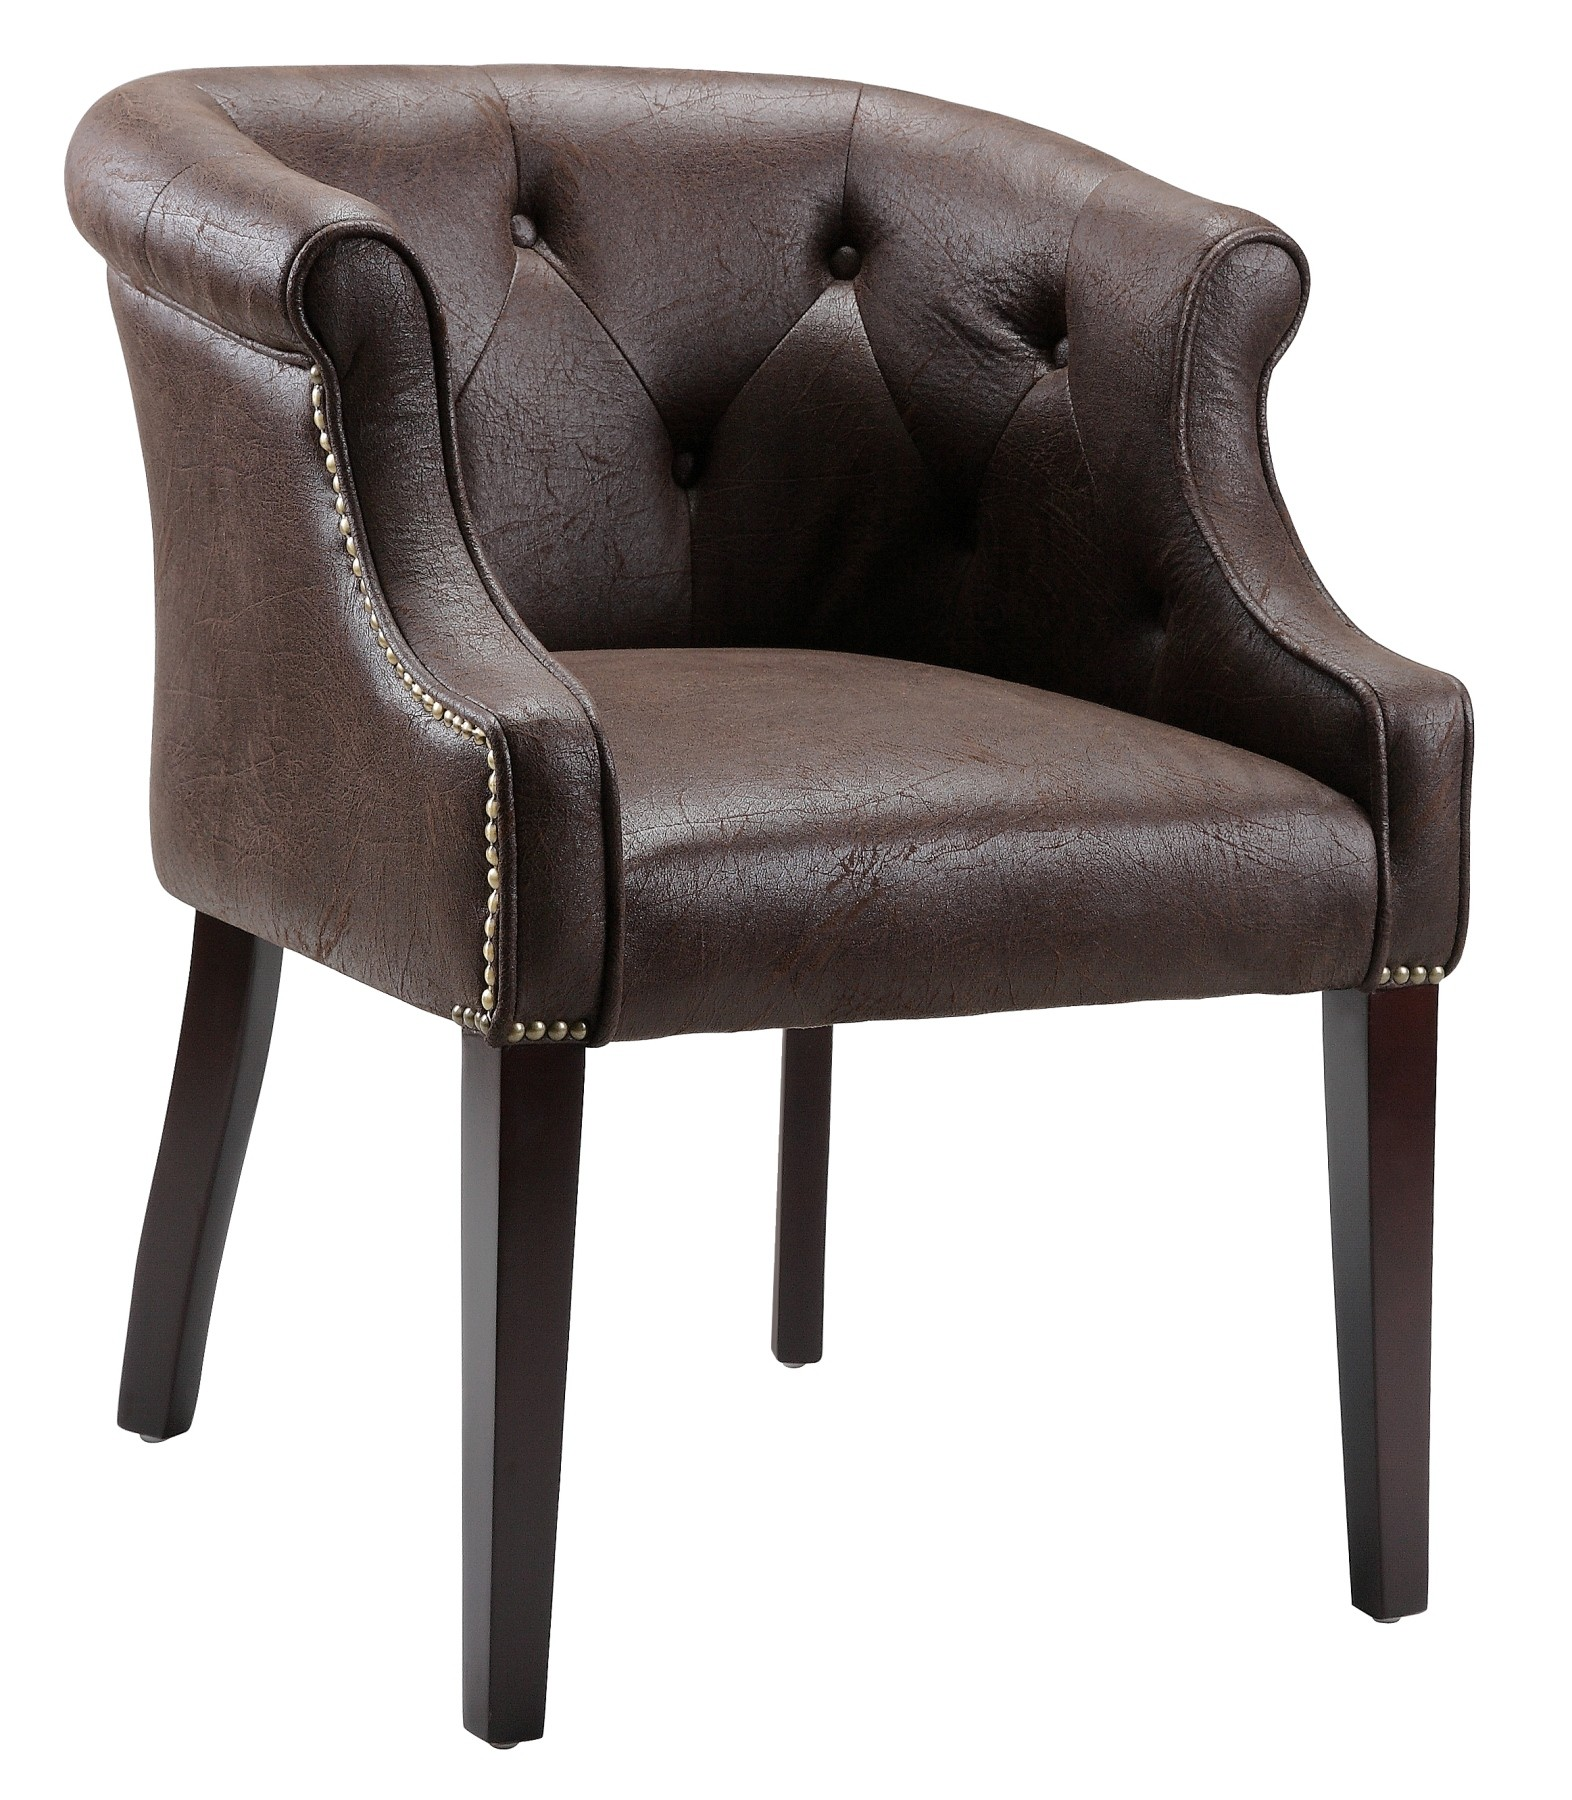 Accent Button Tufted Brown Chair 64744 Stein World